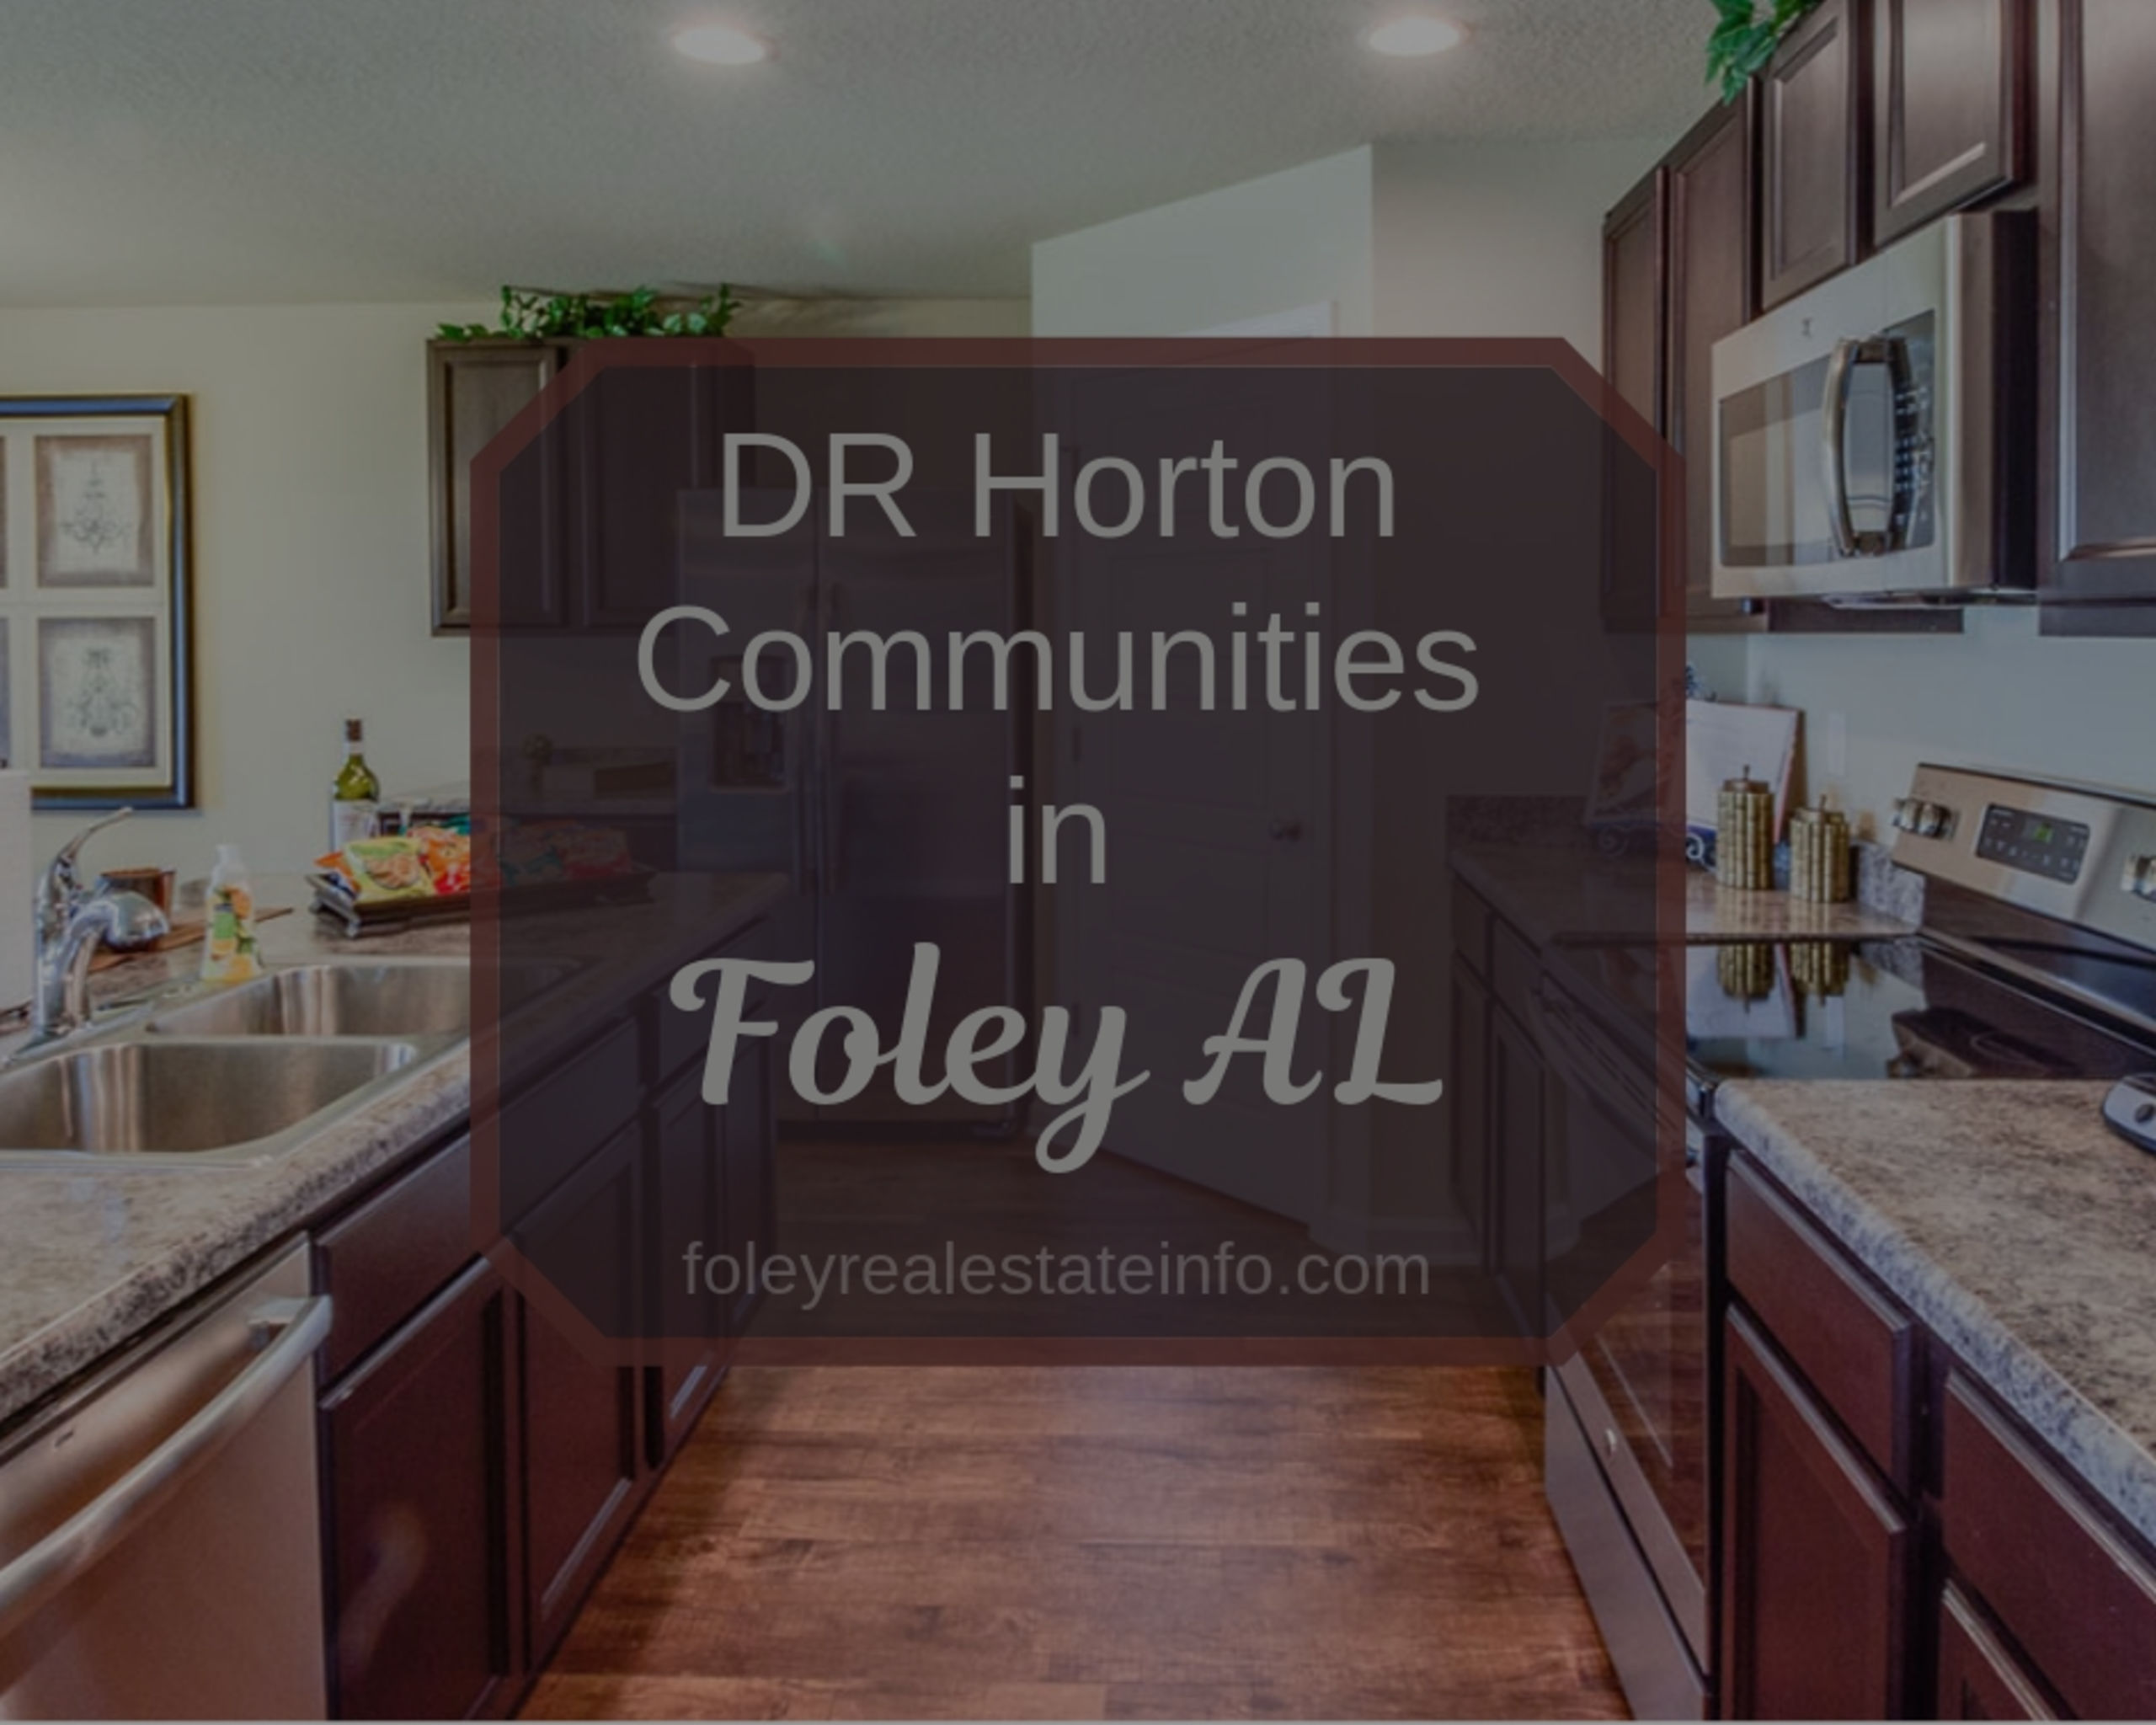 DR Horton Communities in Foley AL